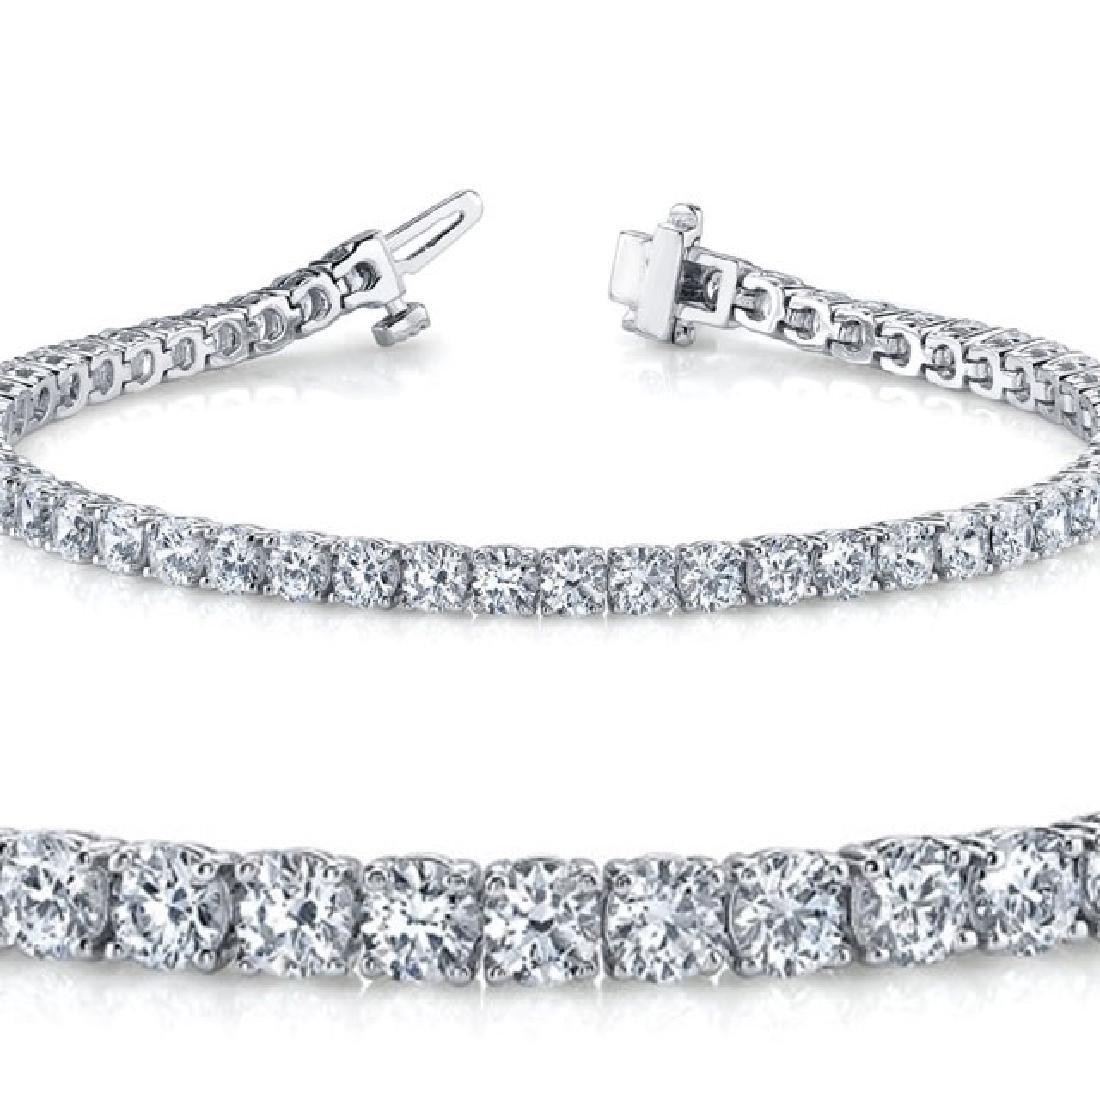 Natural 5.02ct VS-SI Diamond Tennis Bracelet 18K White